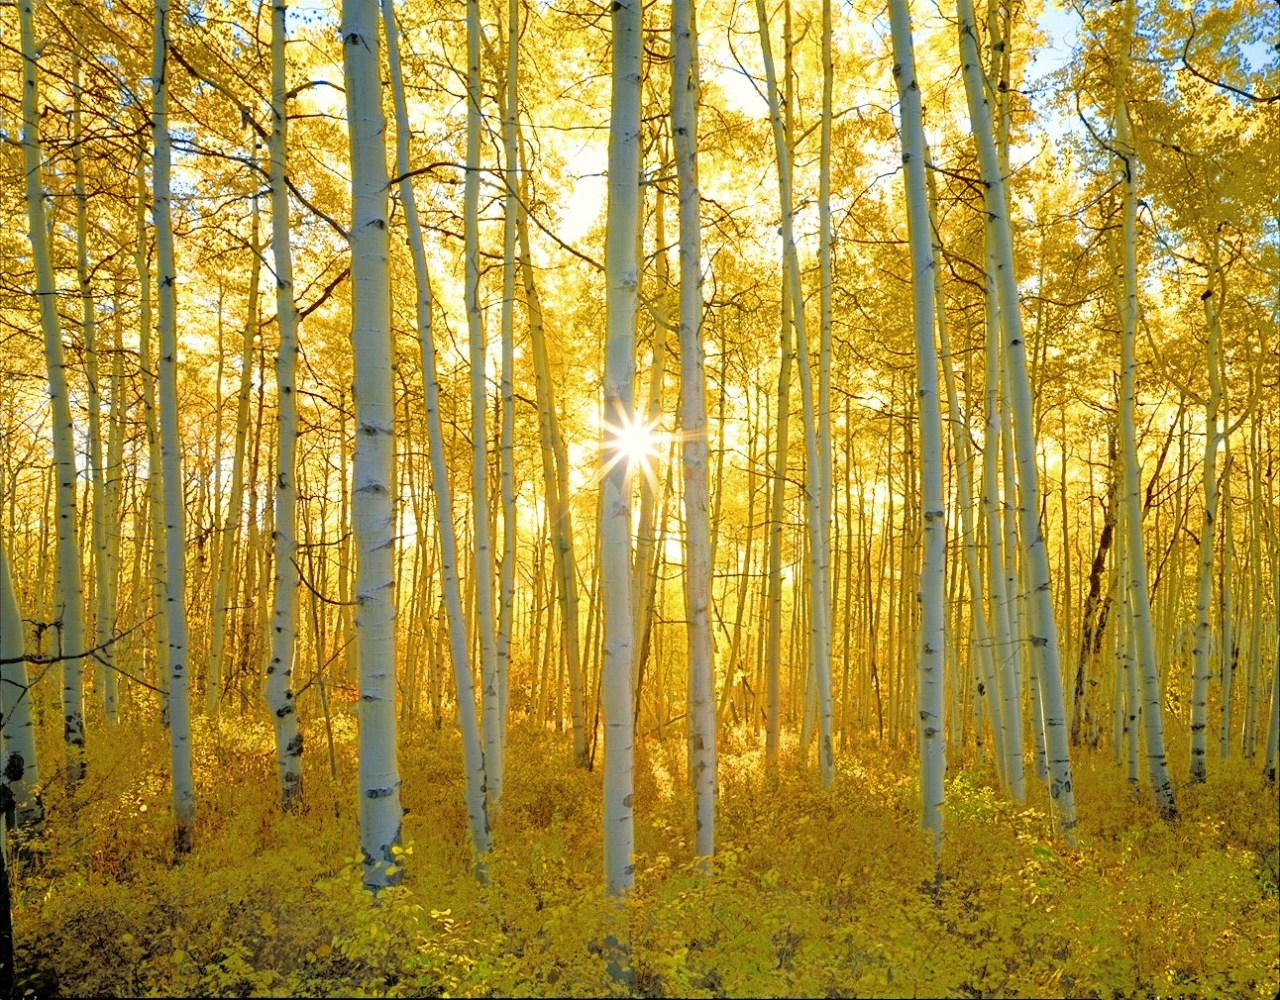 Aspen forest at daybreak